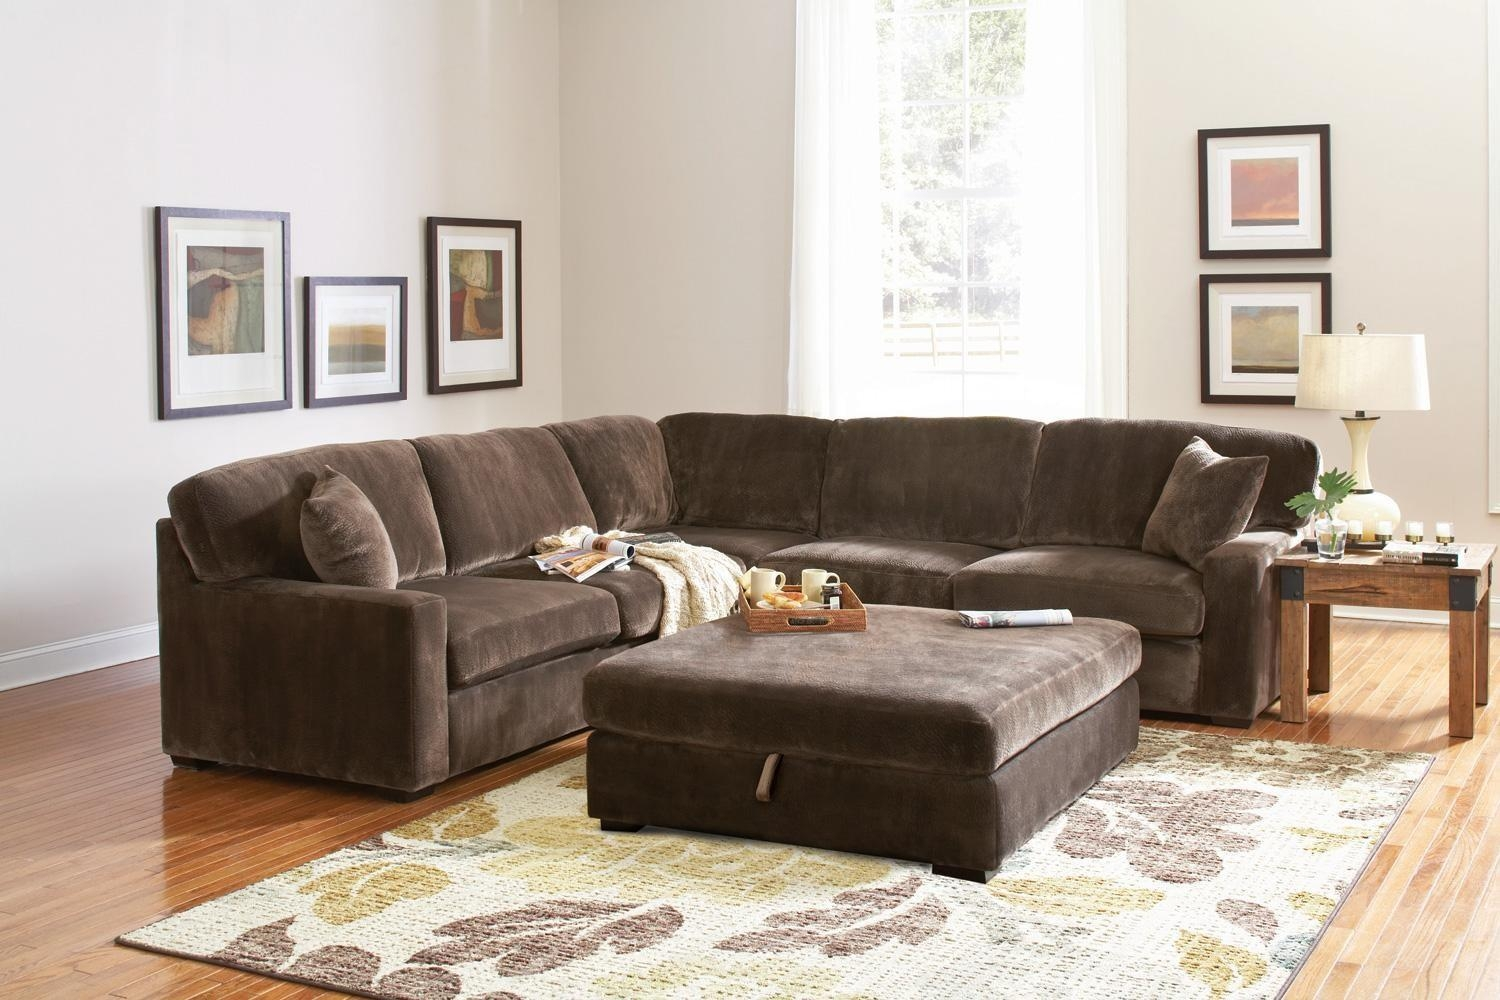 Furniture: Classic And Traditional Style Velvet Sectional Sofa For Throughout Small Modular Sectional Sofa (Image 4 of 20)